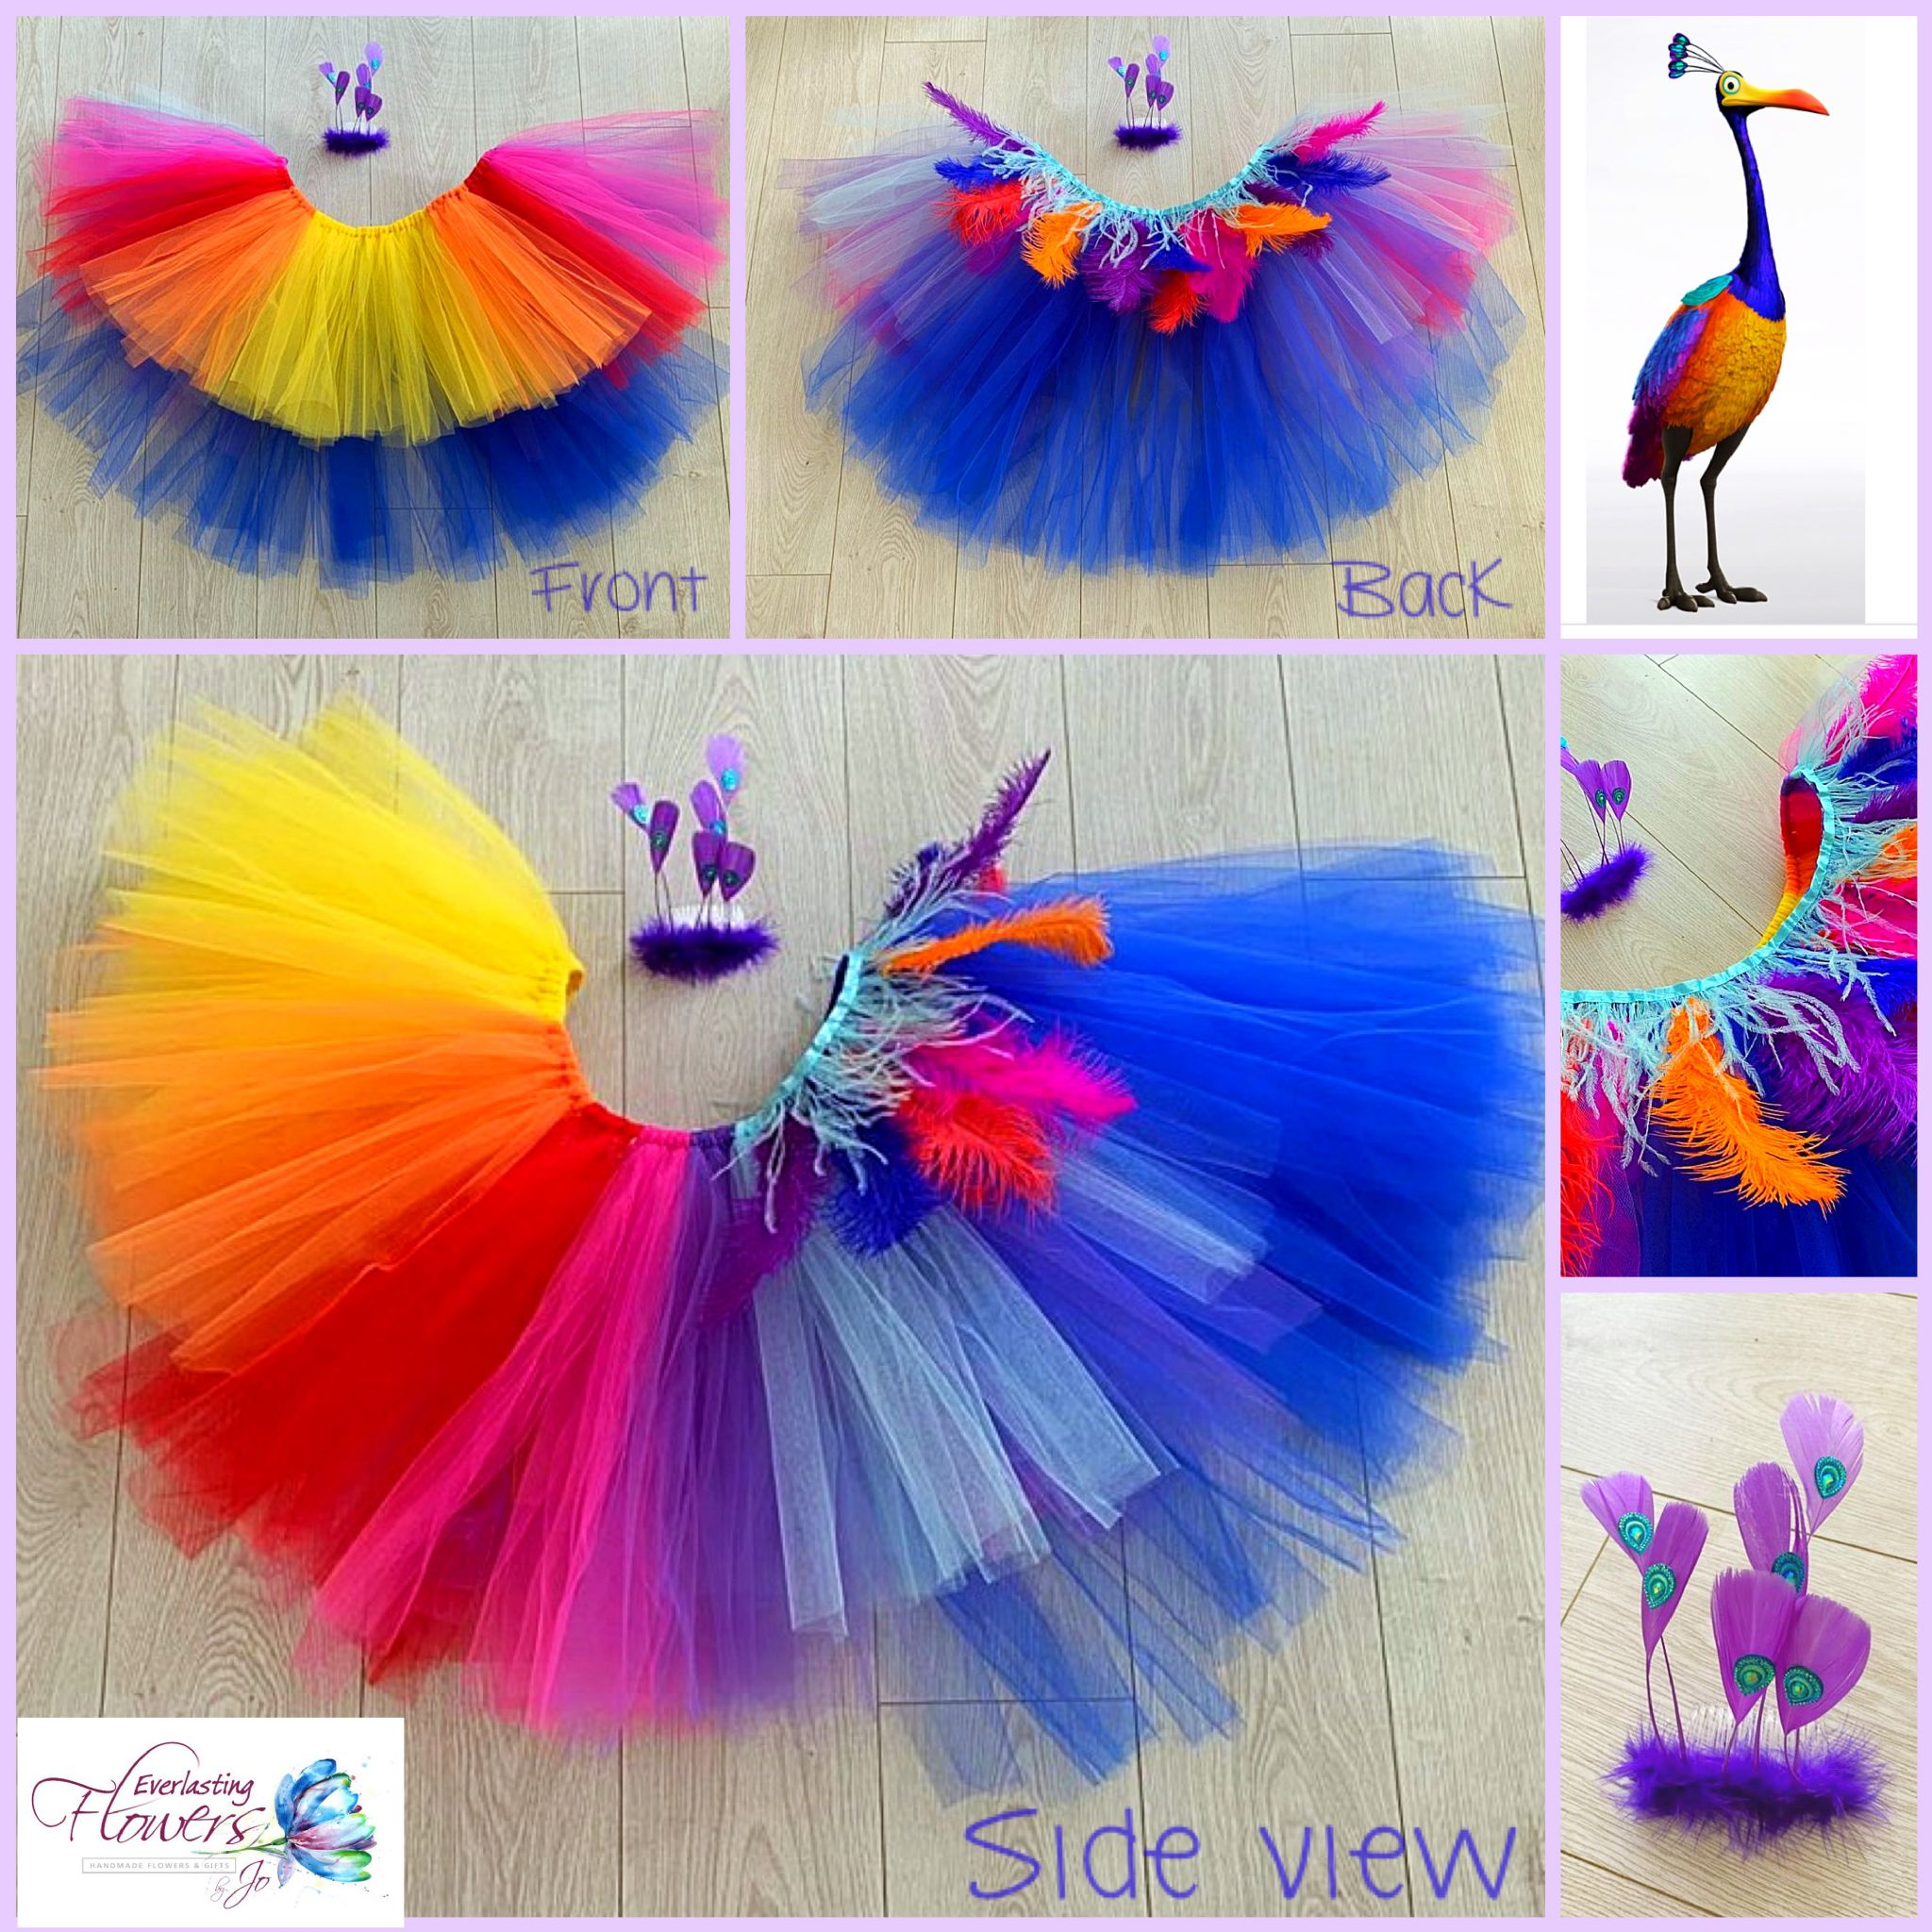 Tutu Bird Tulle Skirt Head Set Dress Up